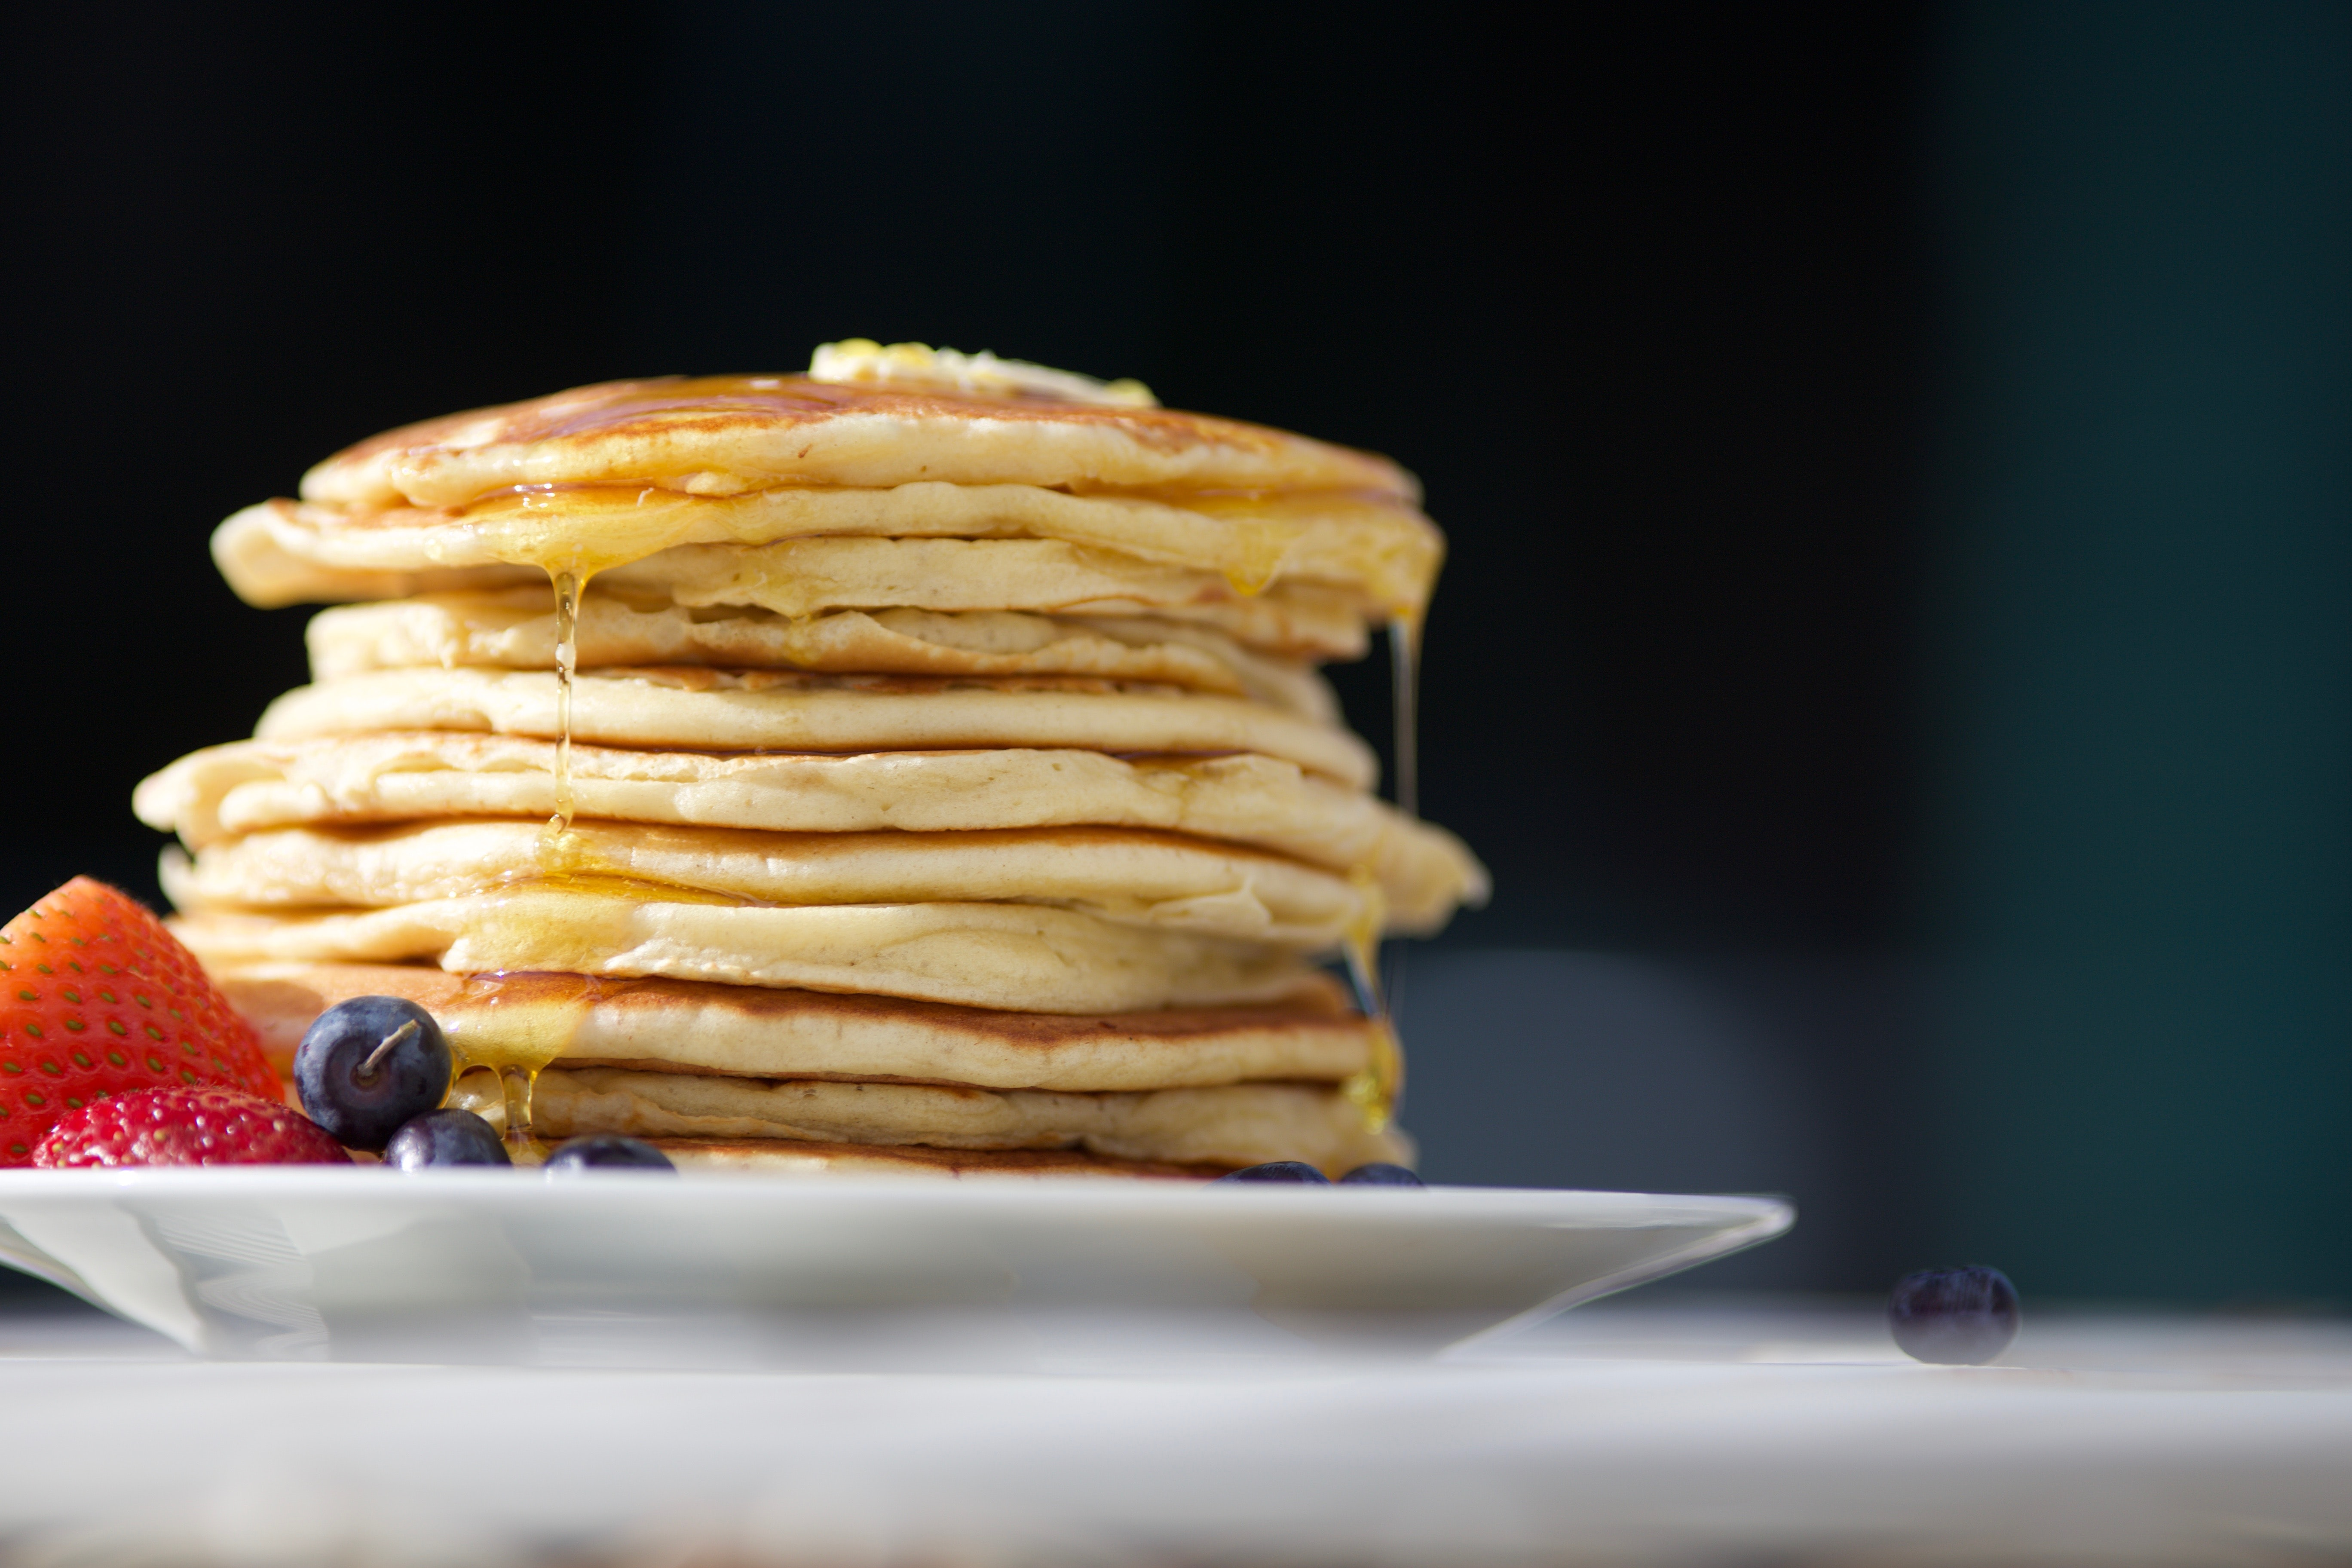 Design industry is like a plate of hot pancakes.